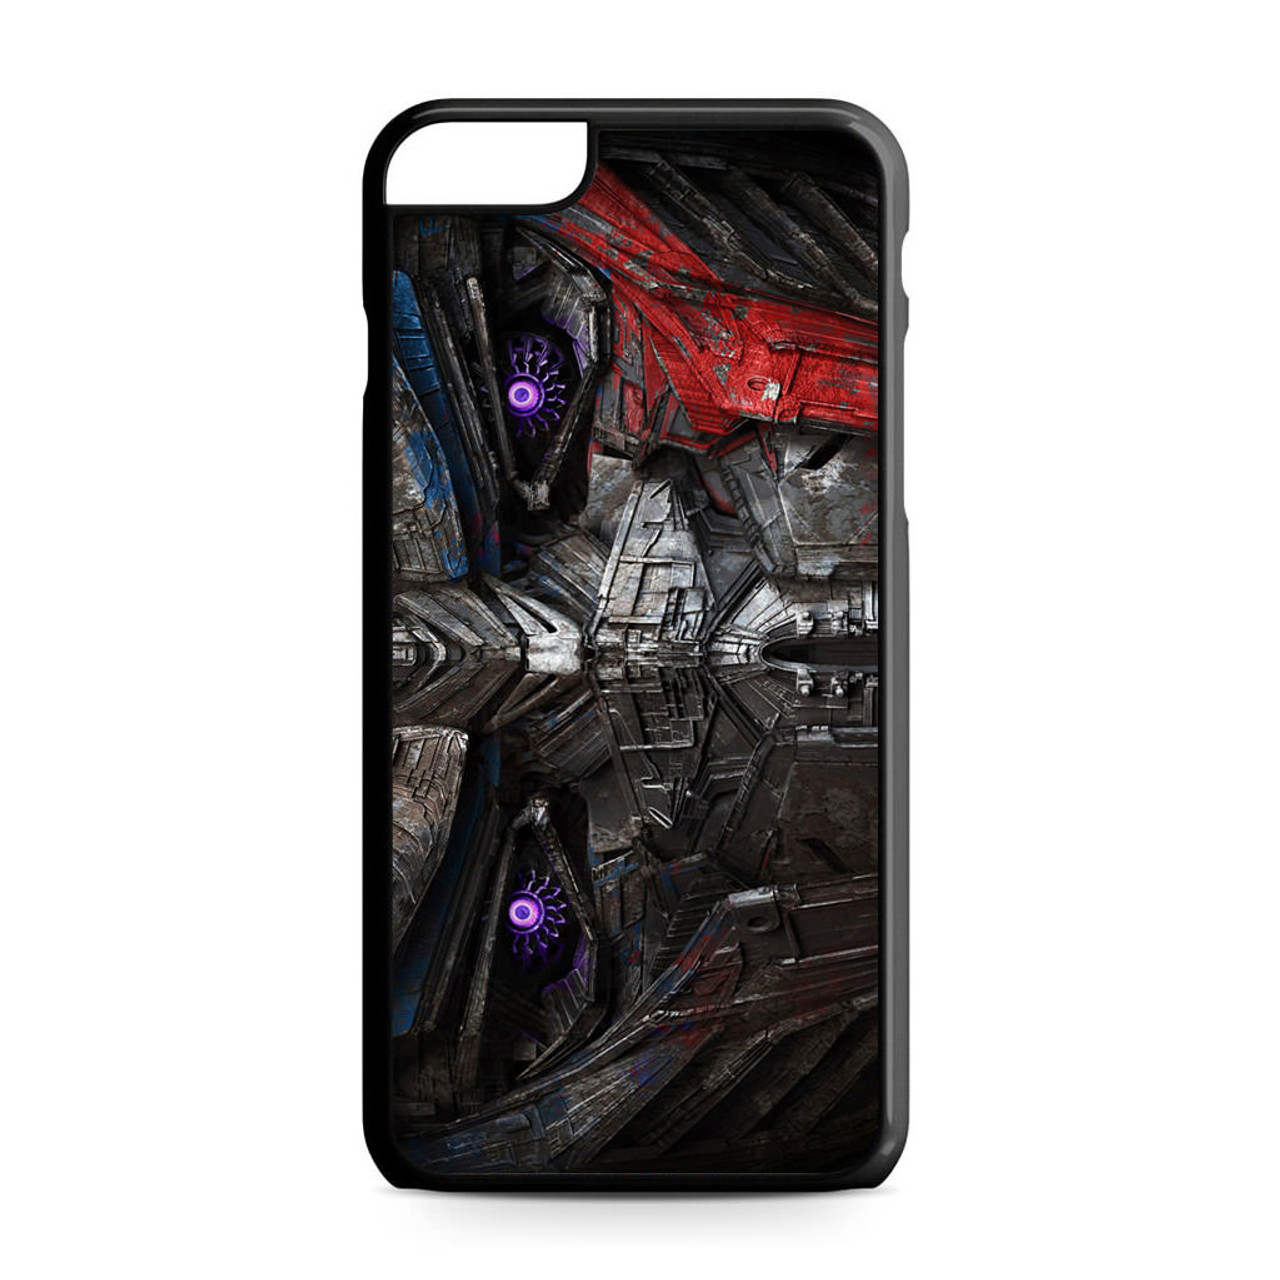 iphone 6 plus cases prime